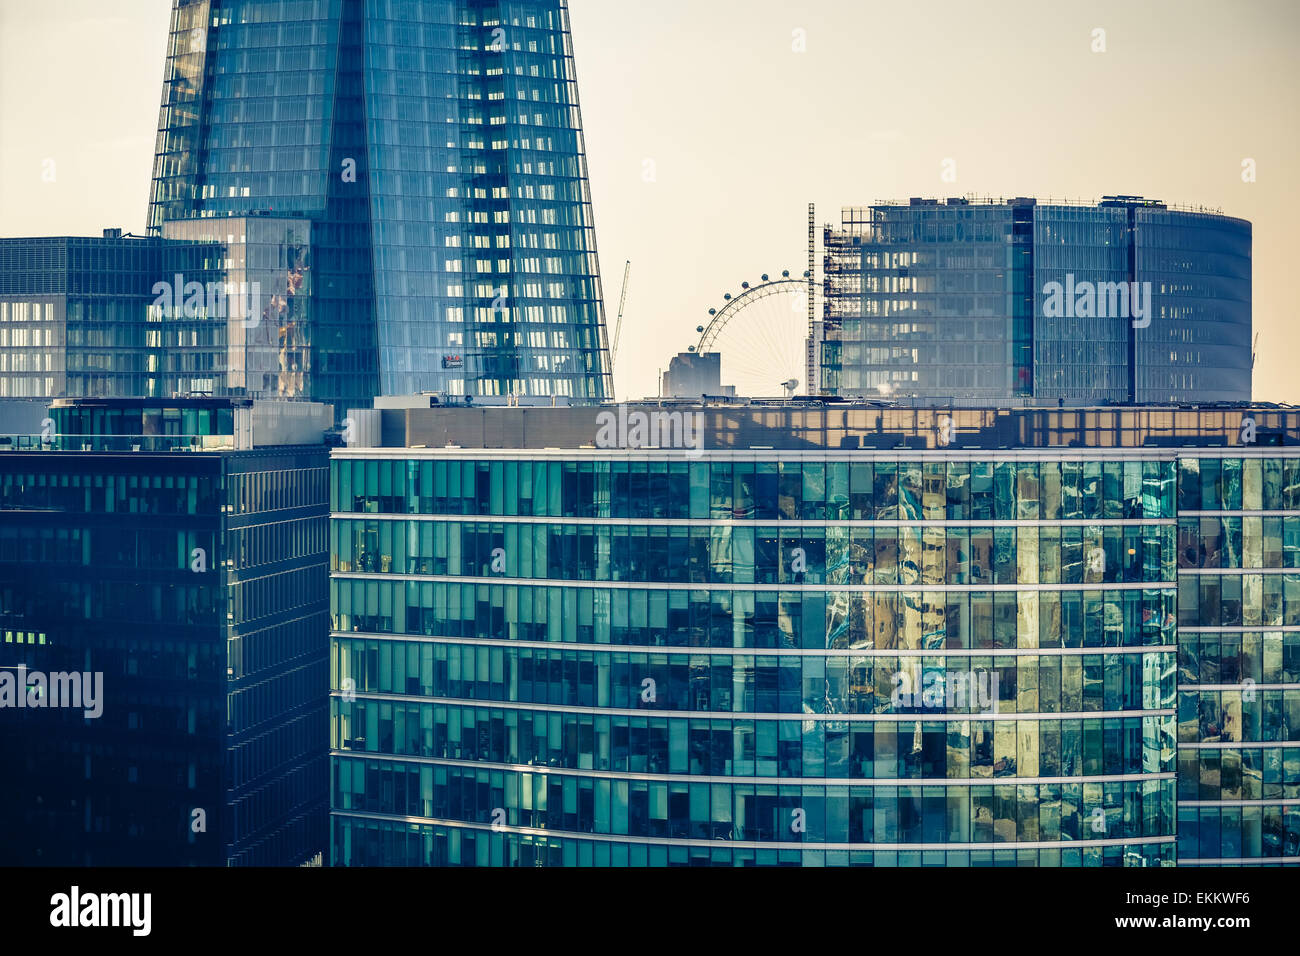 Buildings of London city - Stock Image